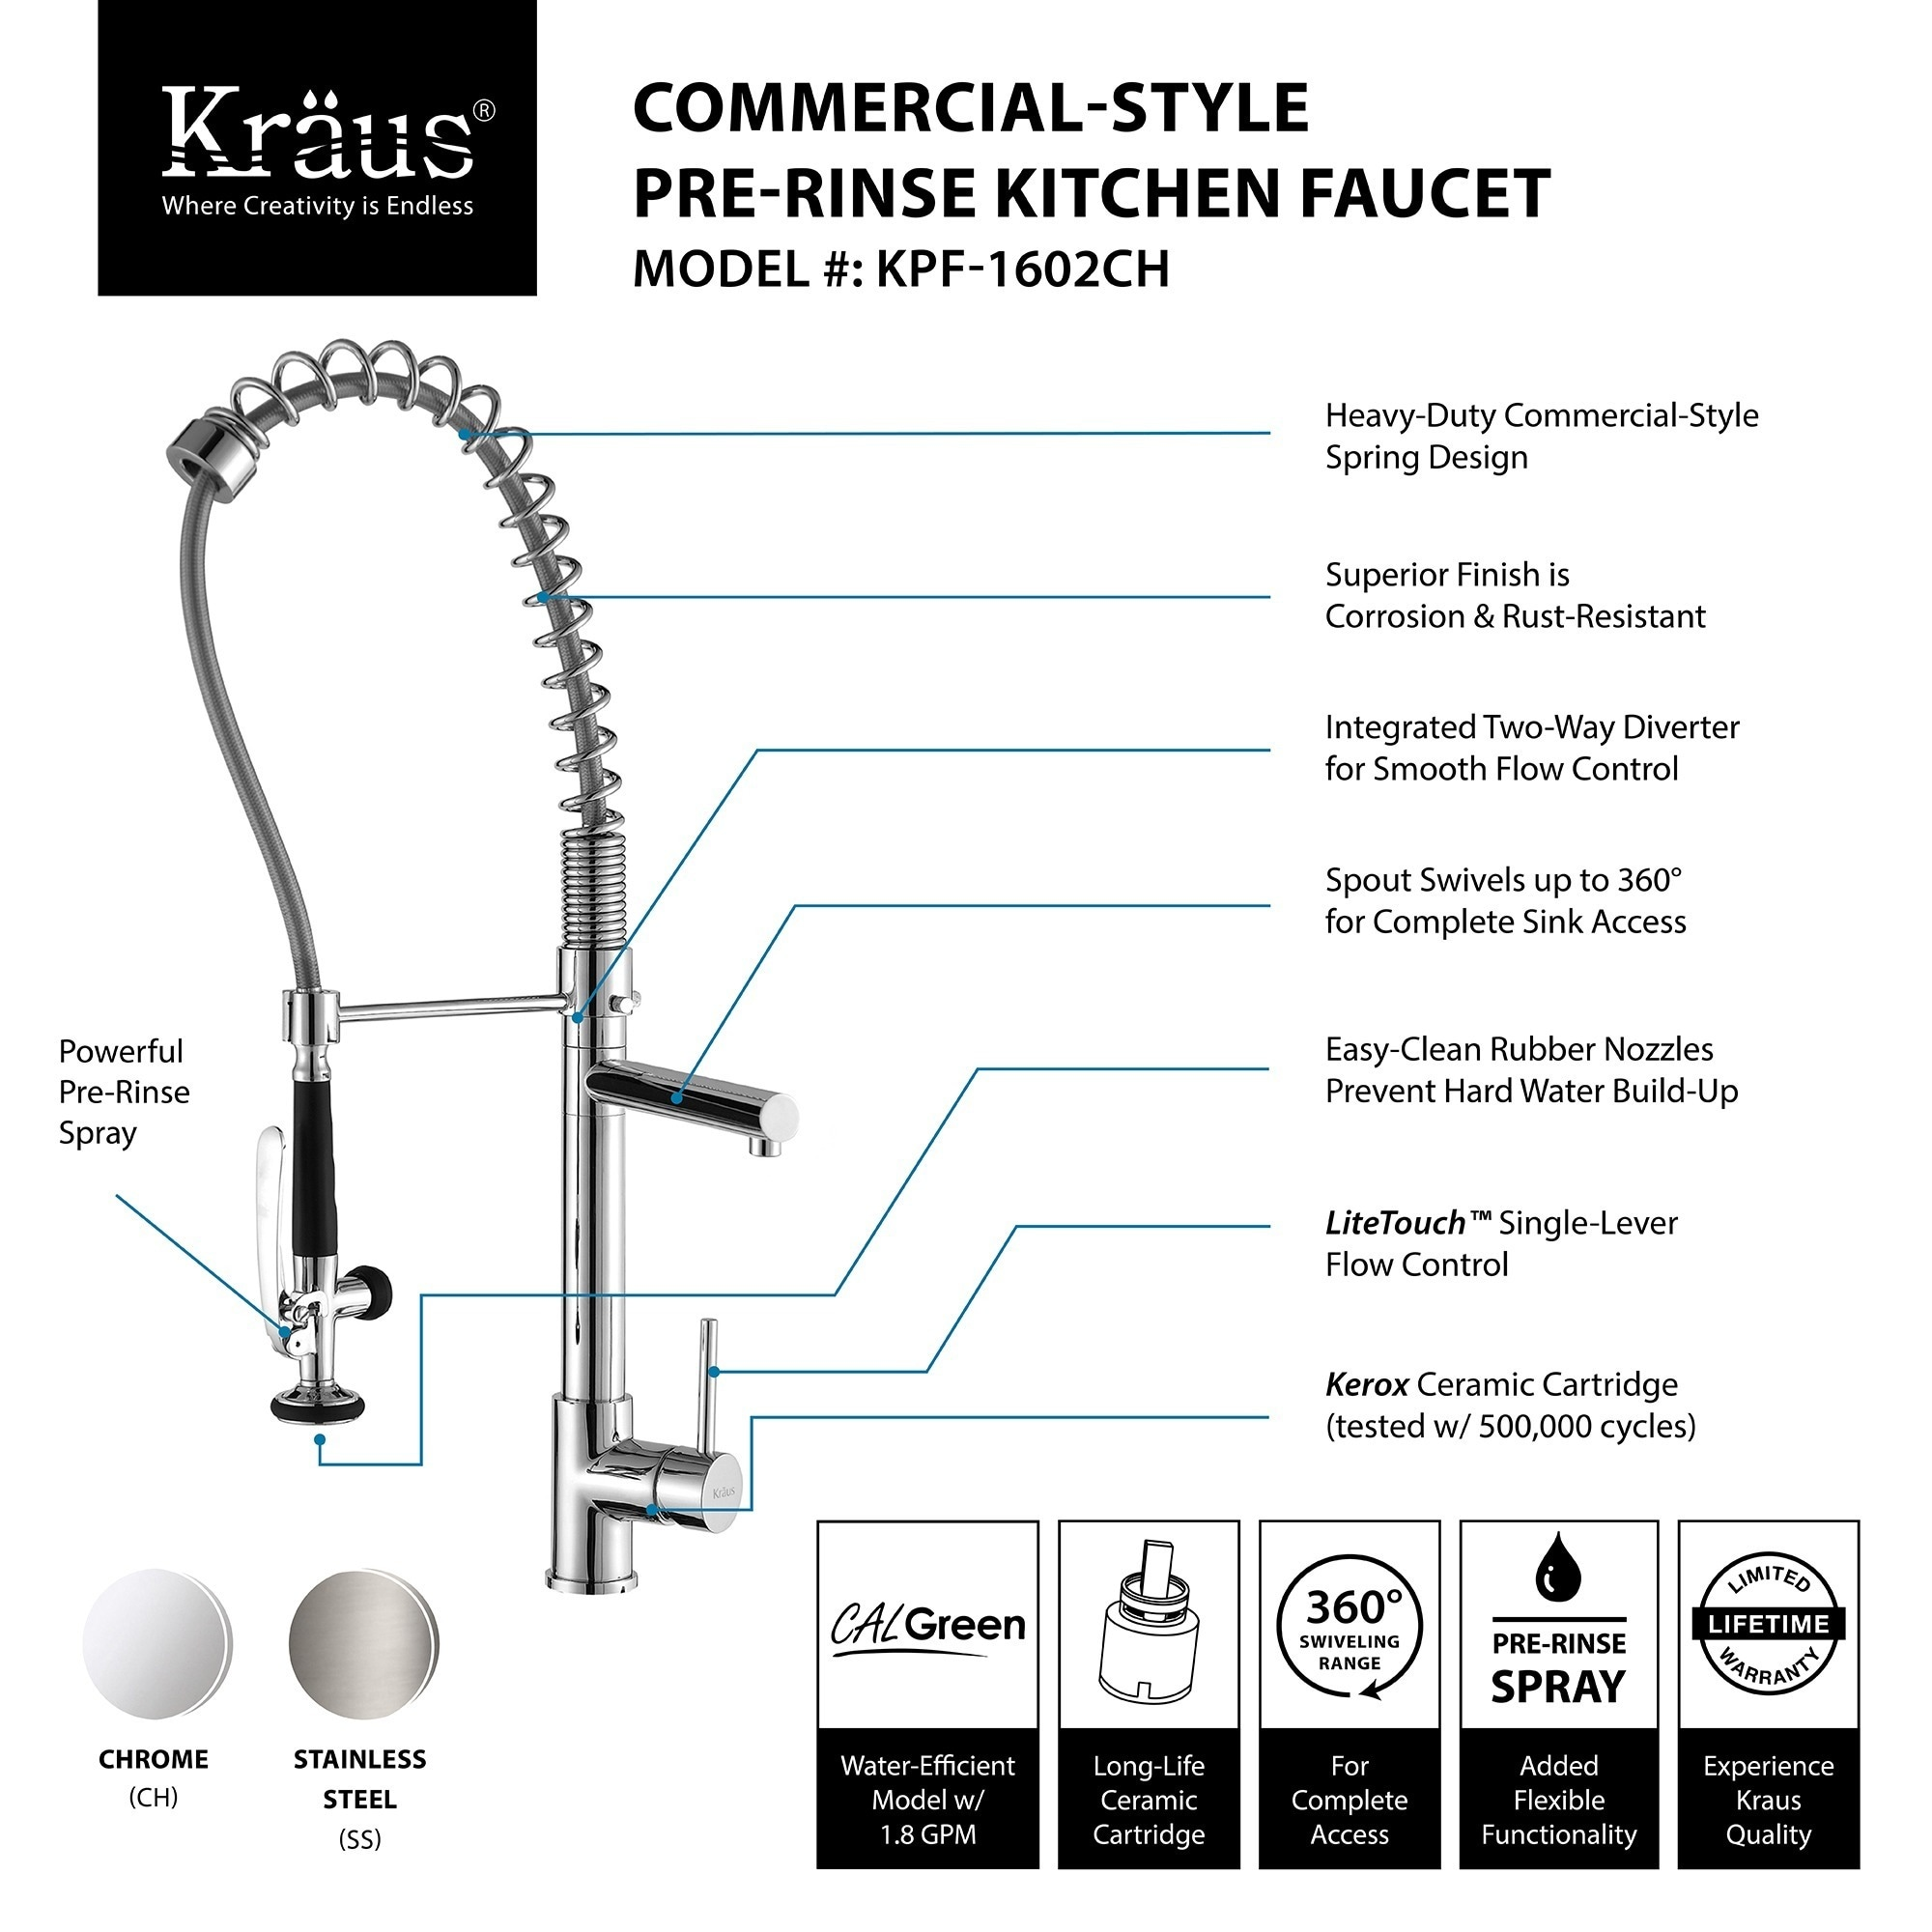 today kraus dual garden kitchen free single commercial oletto shipping home product sprayer style with handle faucet overstock function